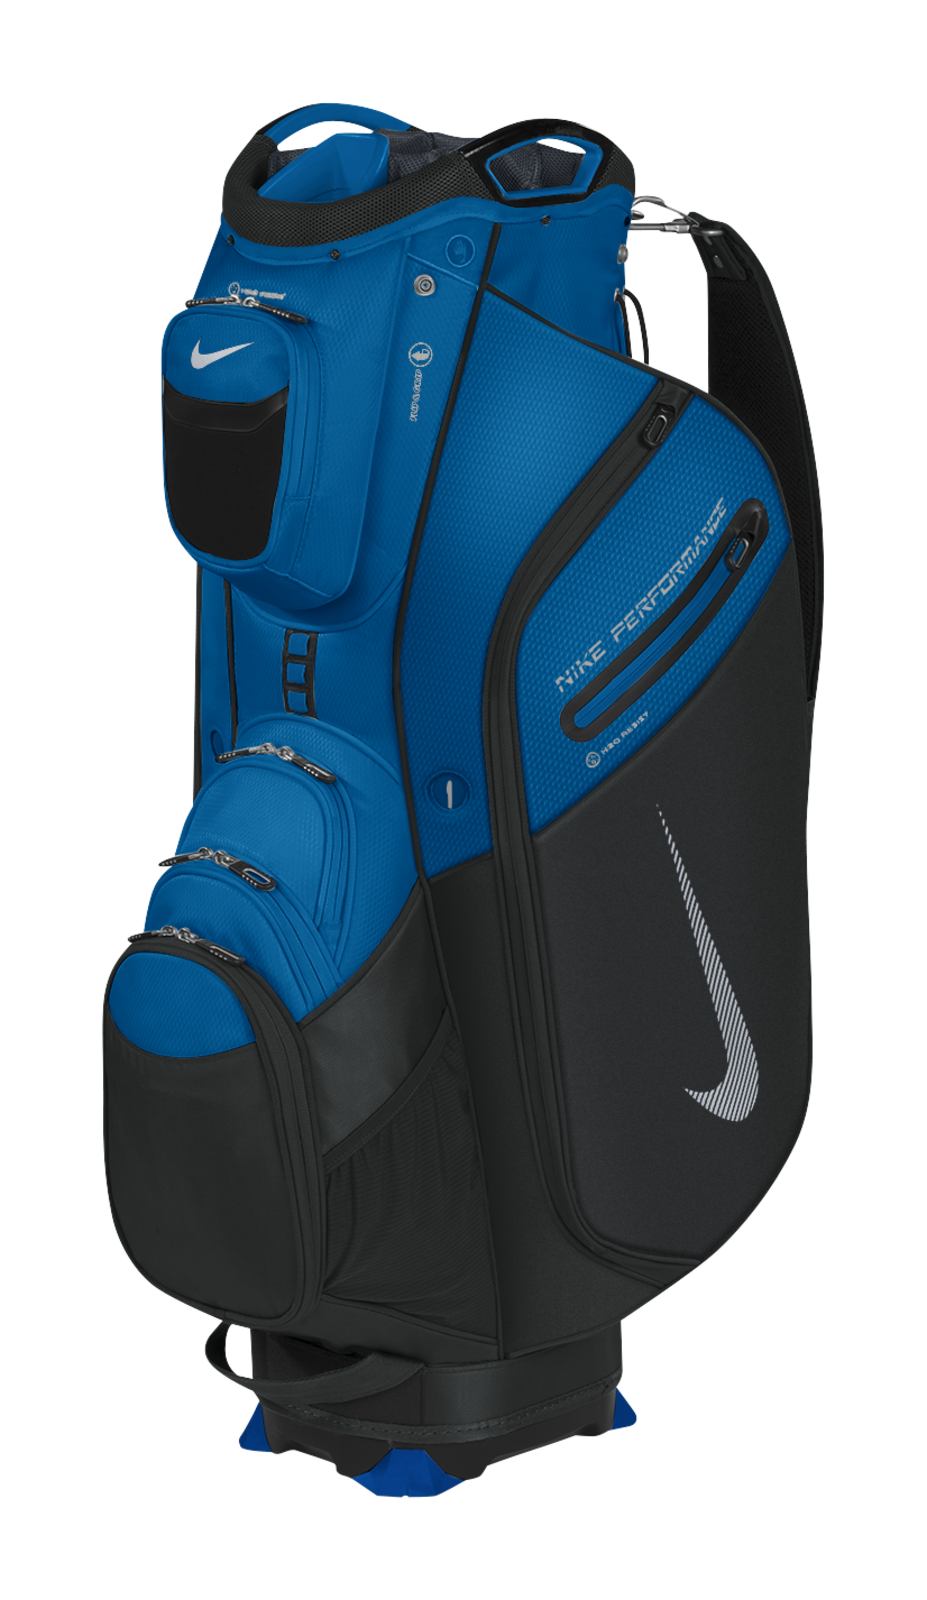 Nike Performance Cart Bag: Modern Design and Superior ...